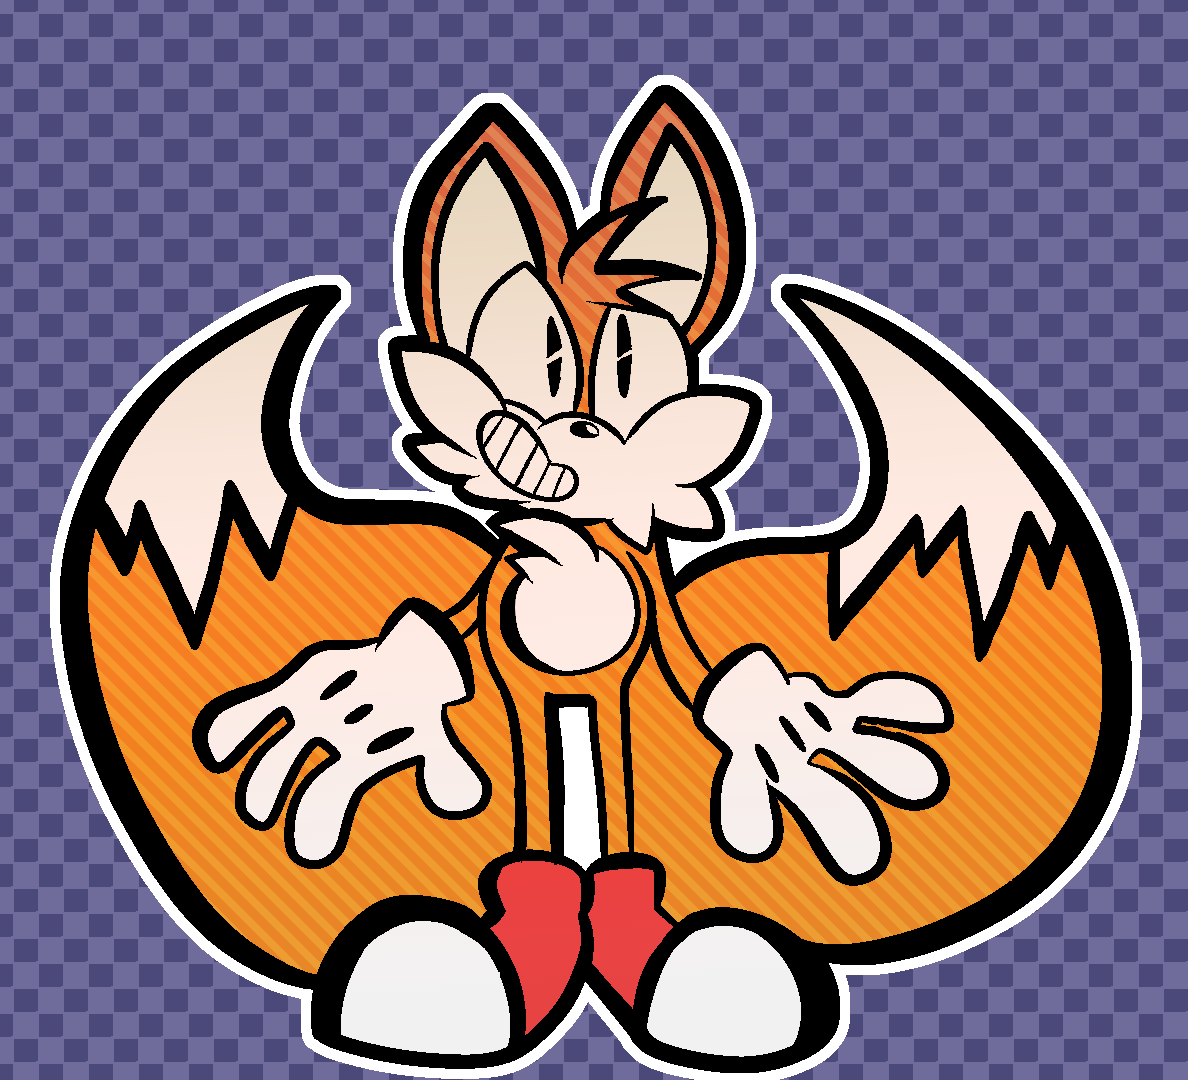 Tails! I&#39;m really proud of this one by a longshot, even if it&#39;s just a flat right now. Hopefully @NaotoOhshima Approves!<br>http://pic.twitter.com/xPtiIIposM